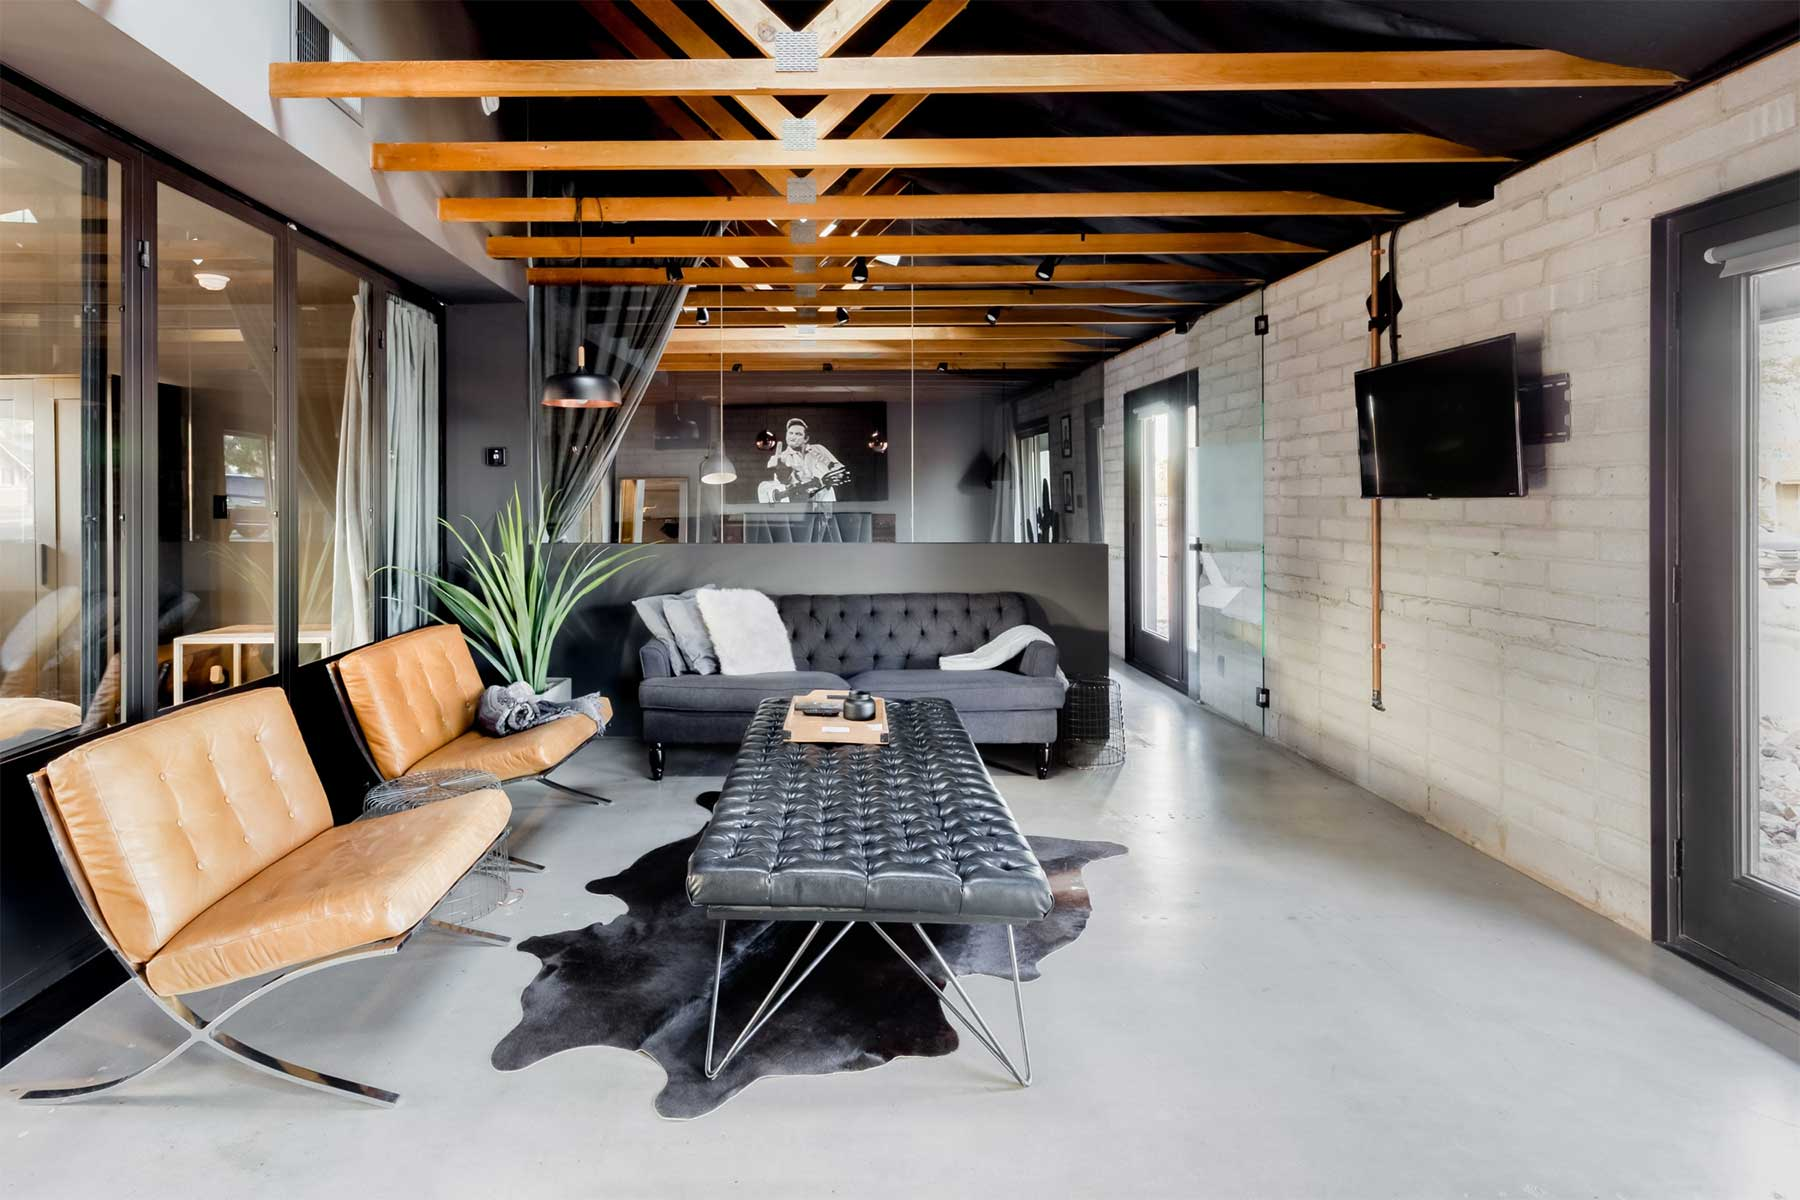 Traum-Loft: The Black House The-Black-House-Airbnb_01